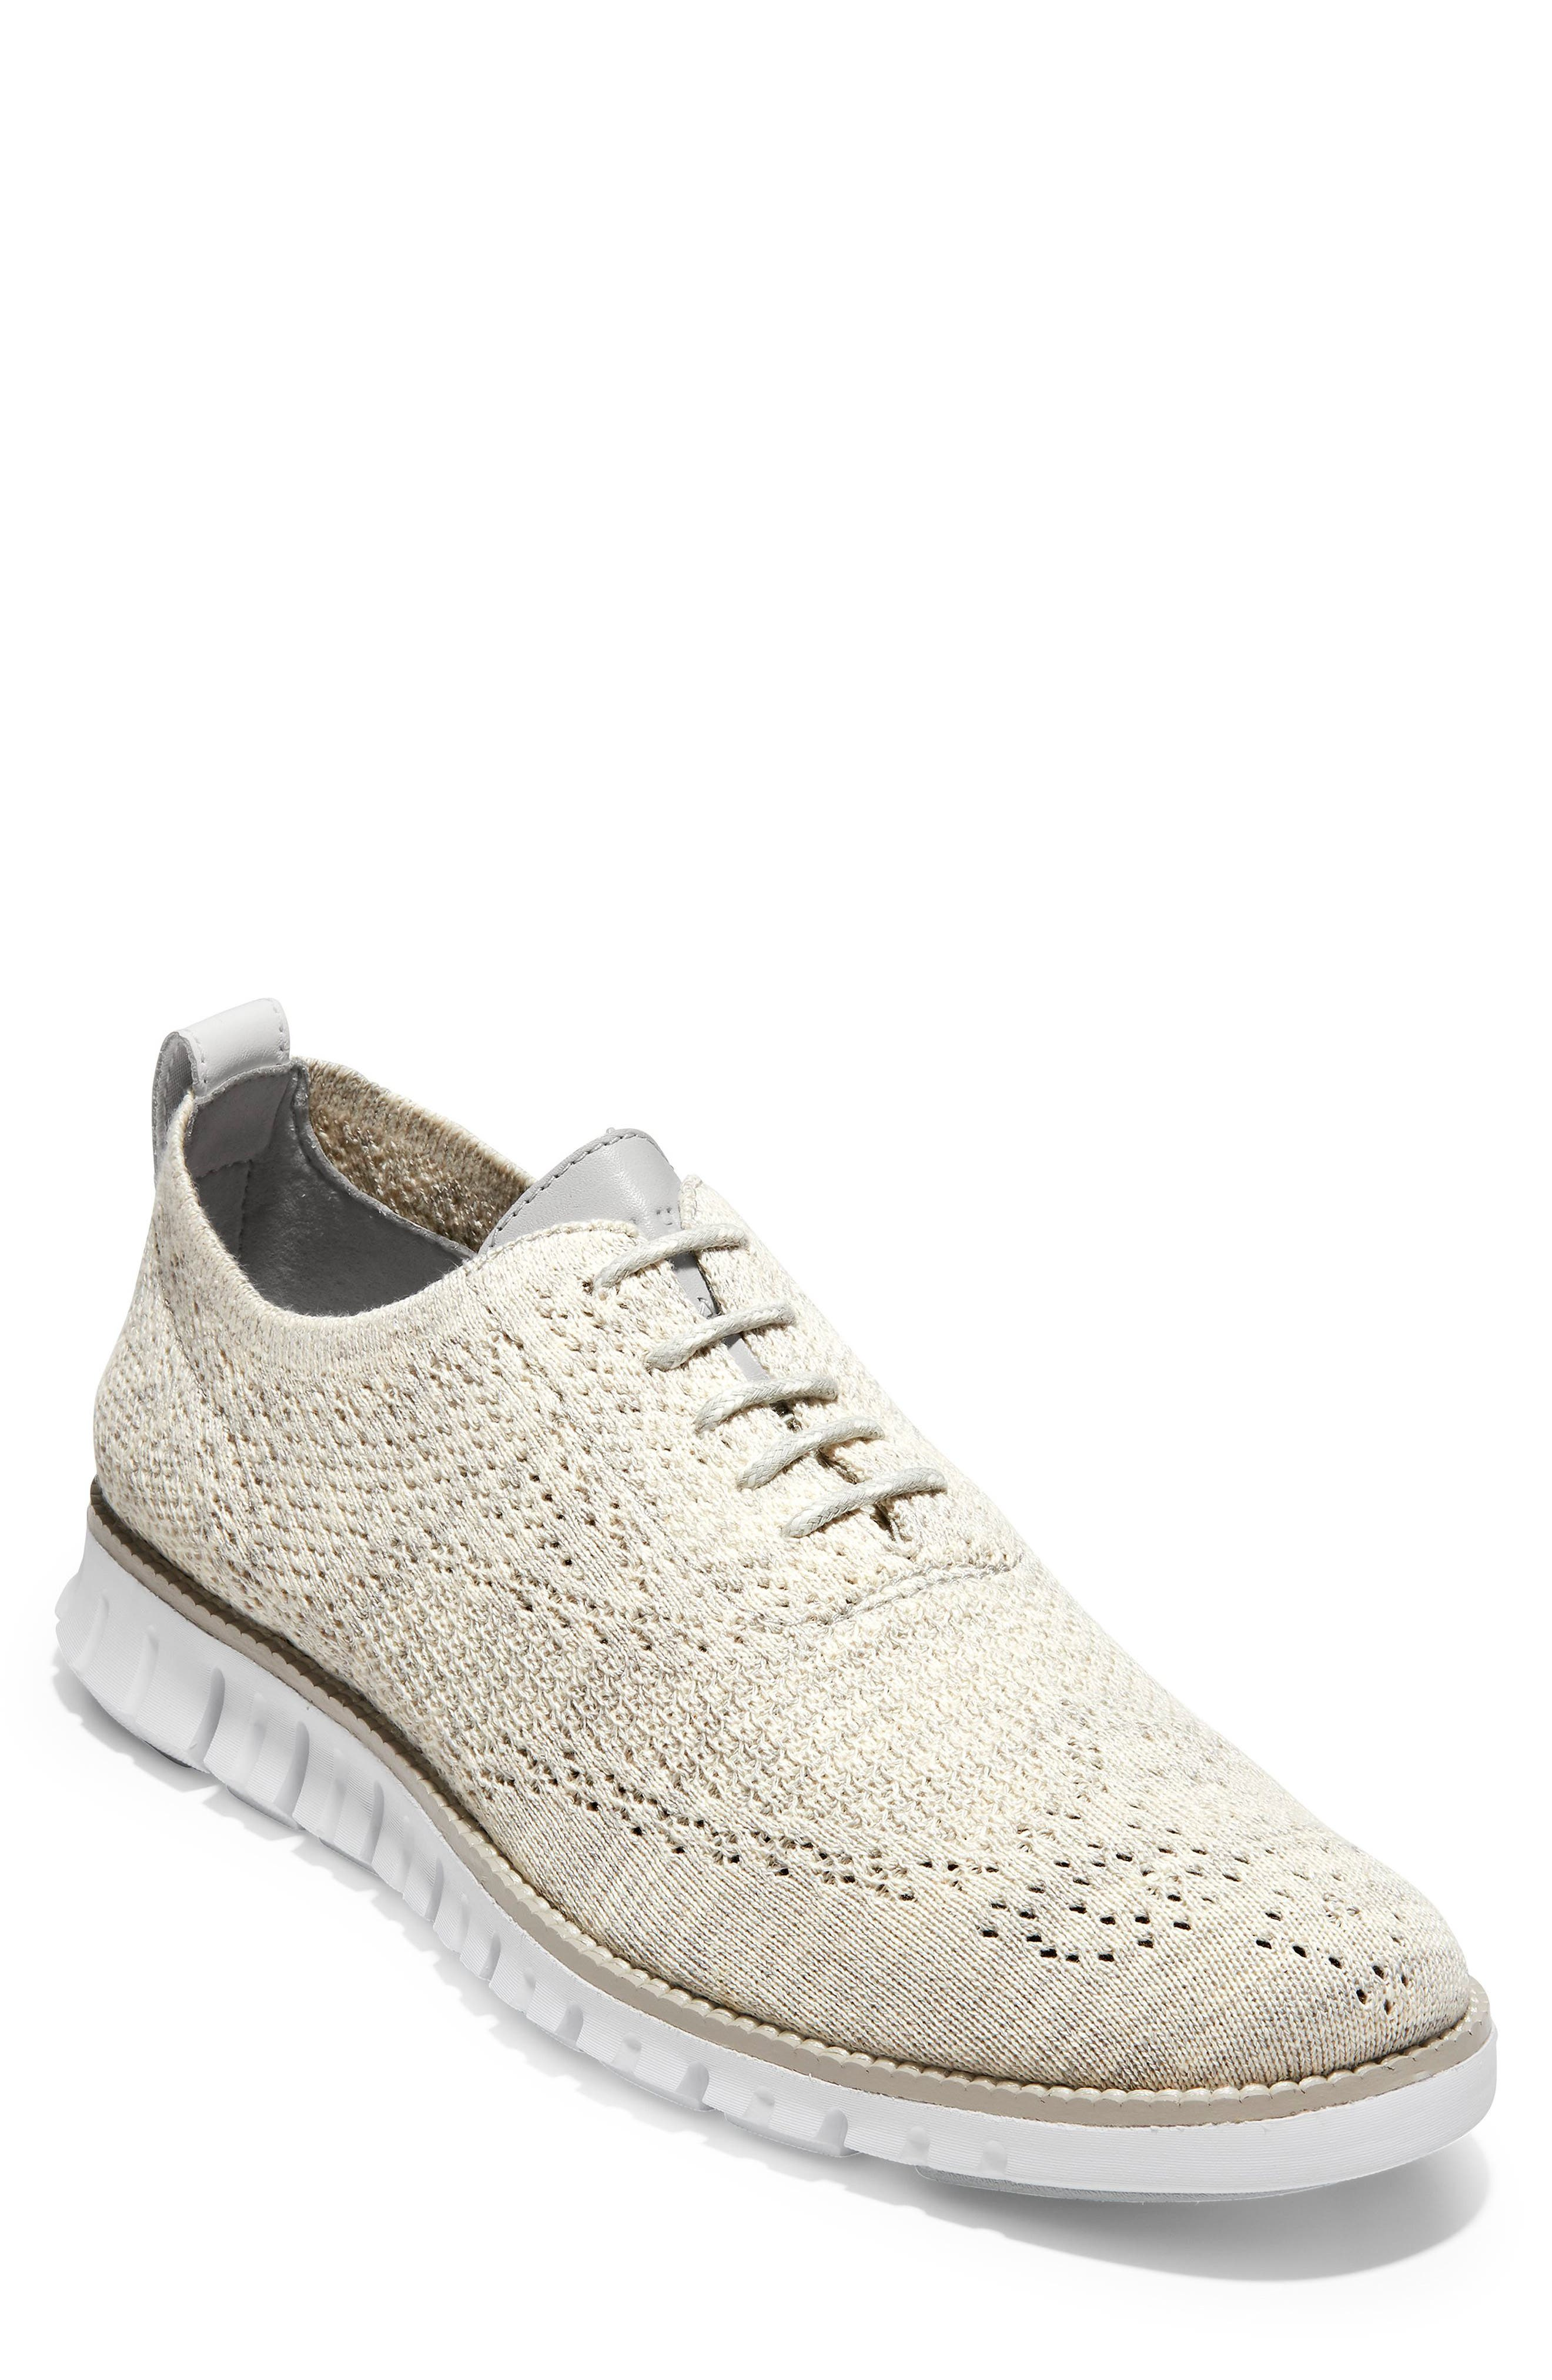 ZeroGrand Stitchlite Woven Wool Wingtip, Main, color, HARBOR MIST KNIT